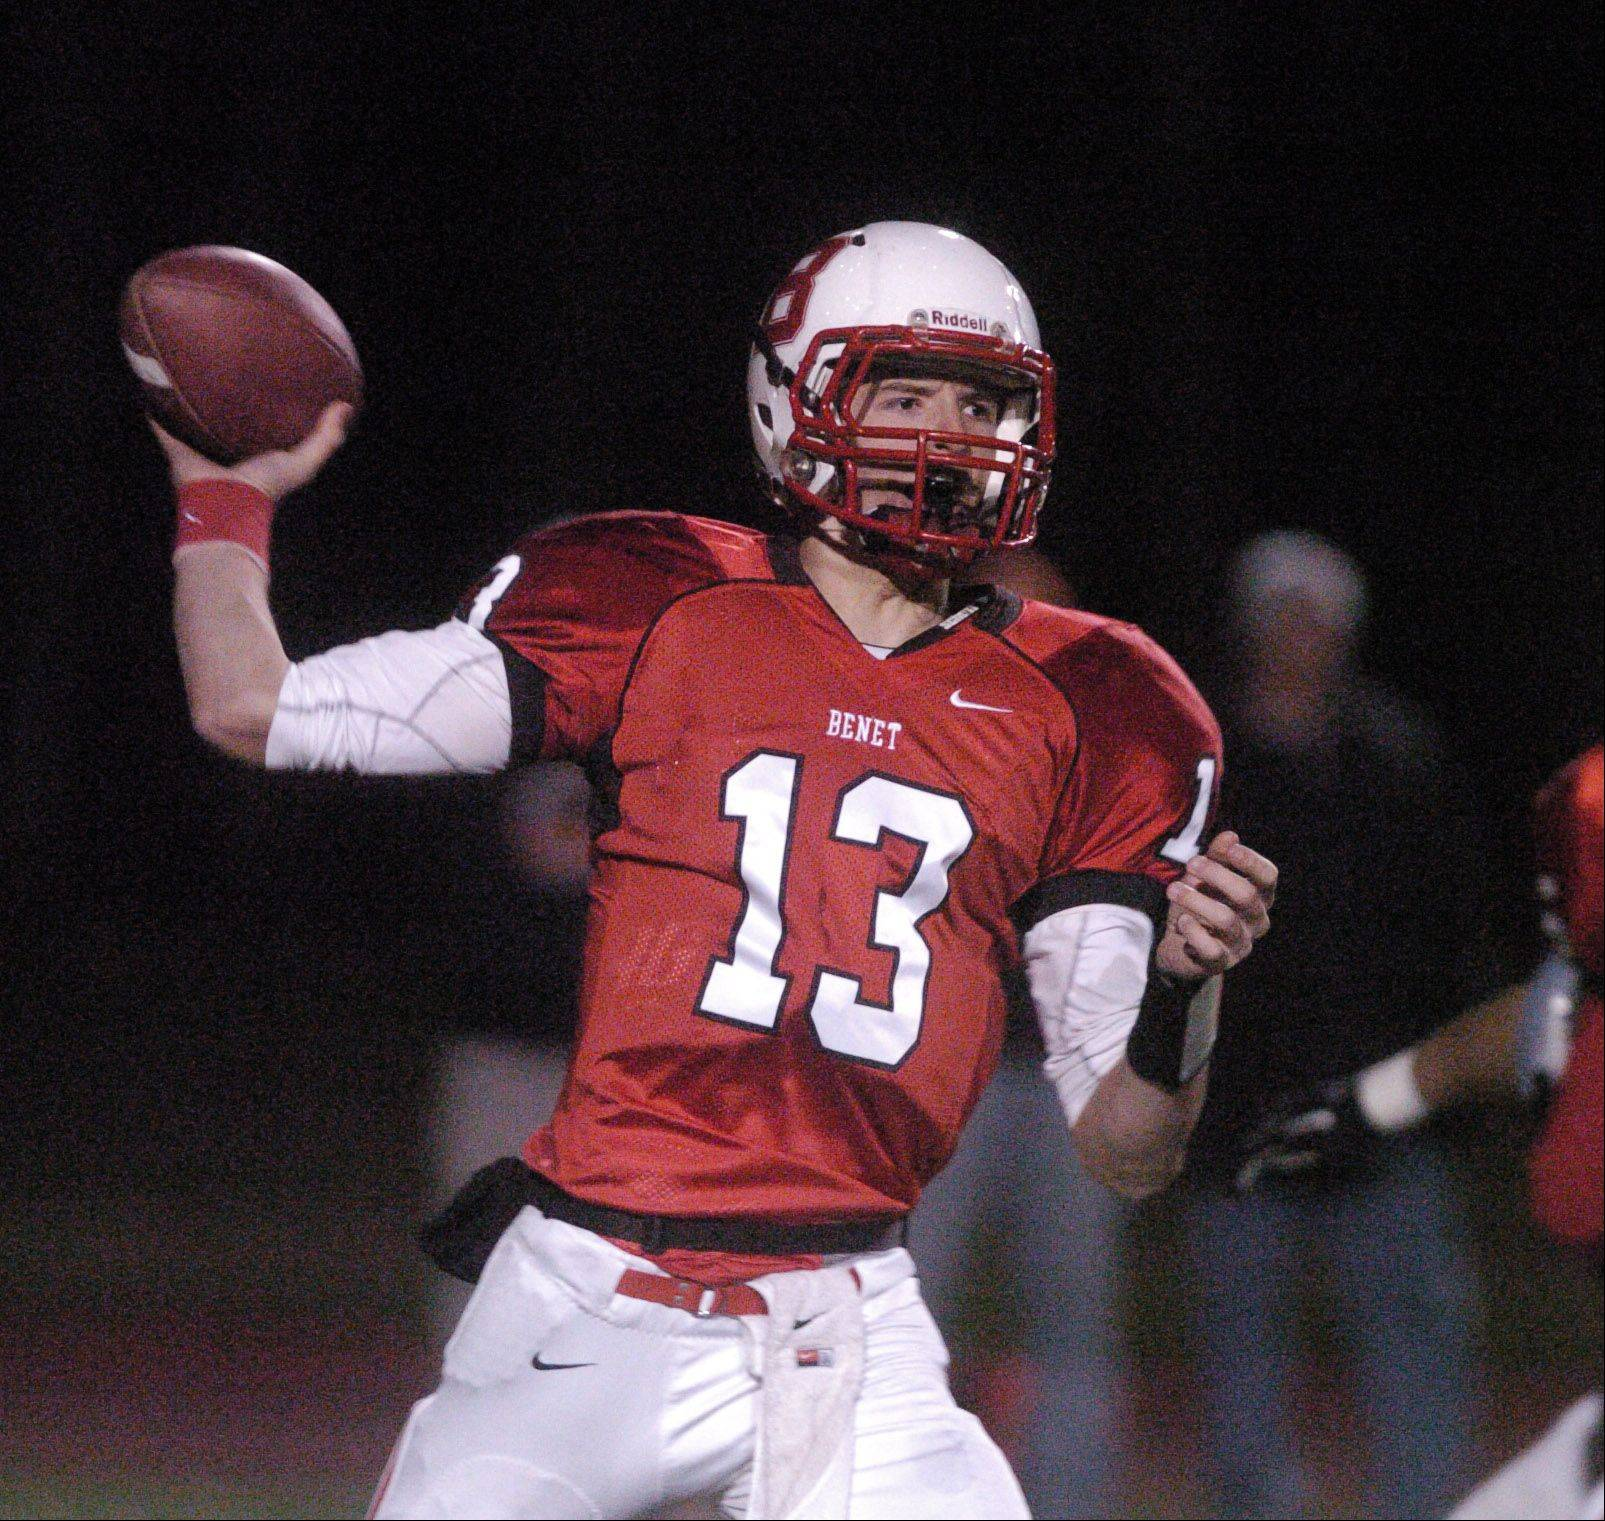 Jack Beneventi of Benet Academy prepares to pass.